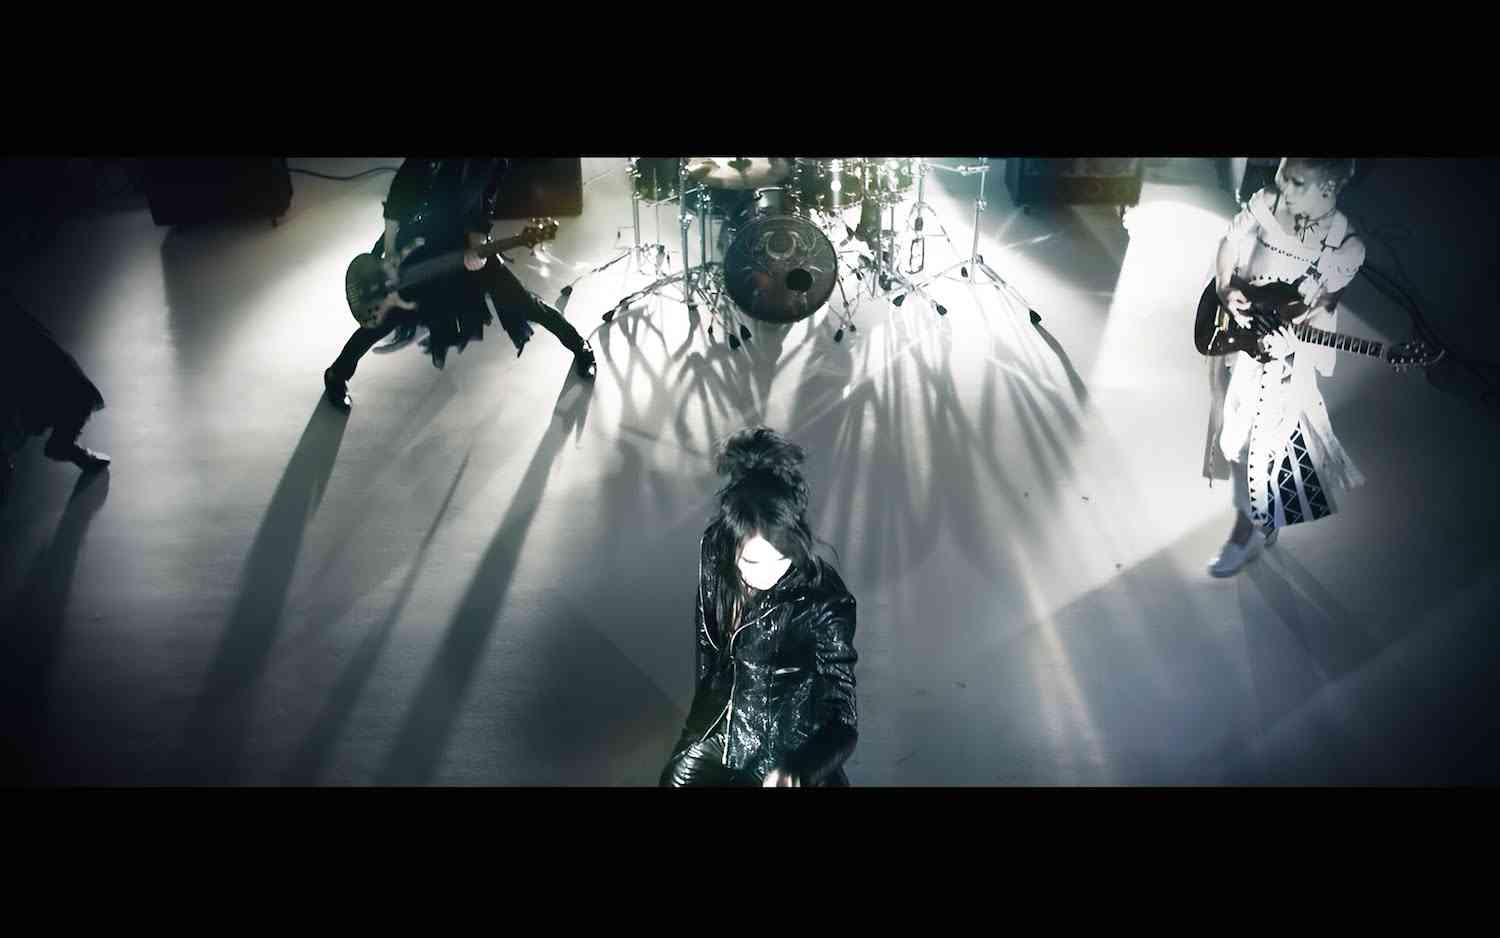 NOCTURNAL BLOODLUST - PROVIDENCE (PV FULL) - YouTube